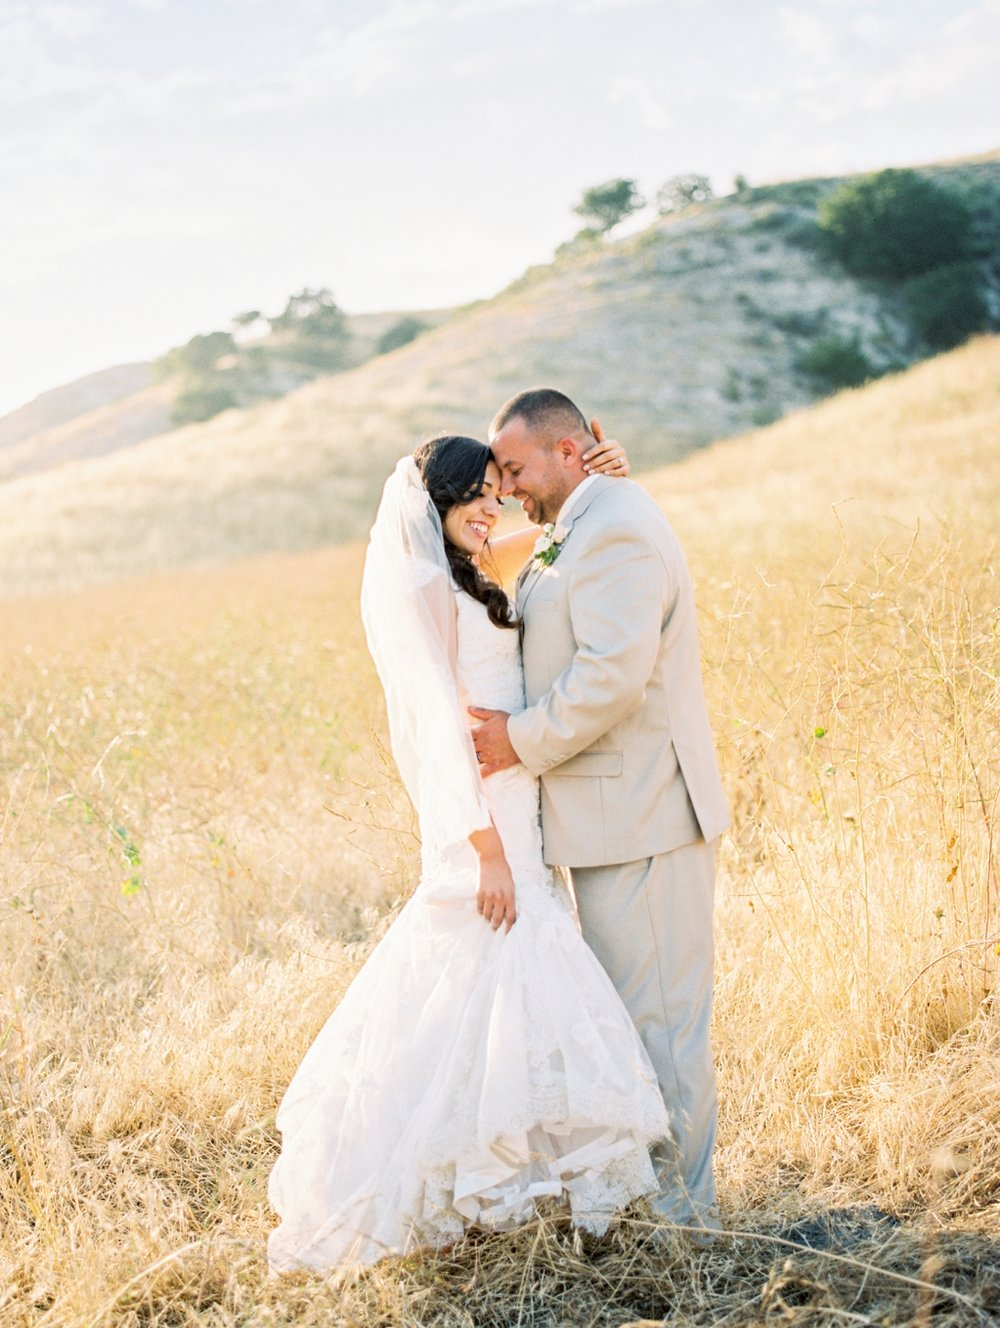 santa-ynez-wedding-mike-thezier-photography_0049.jpg